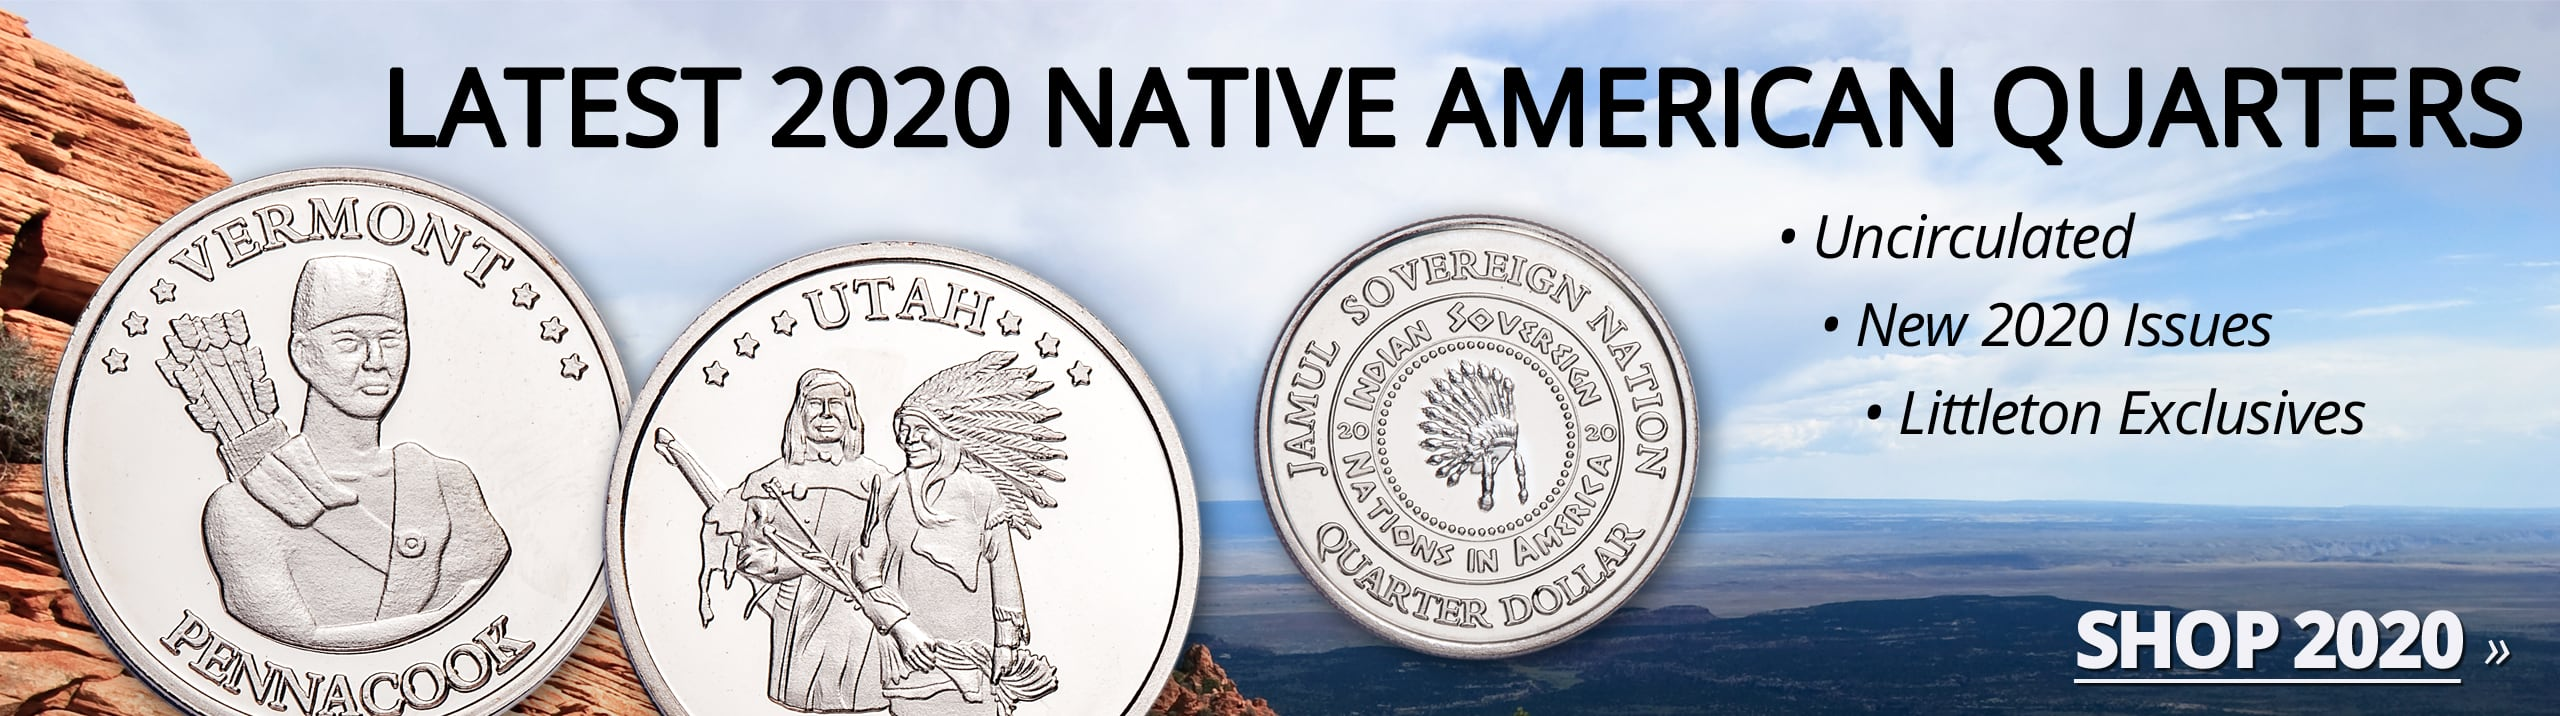 Latest Native American Quarters